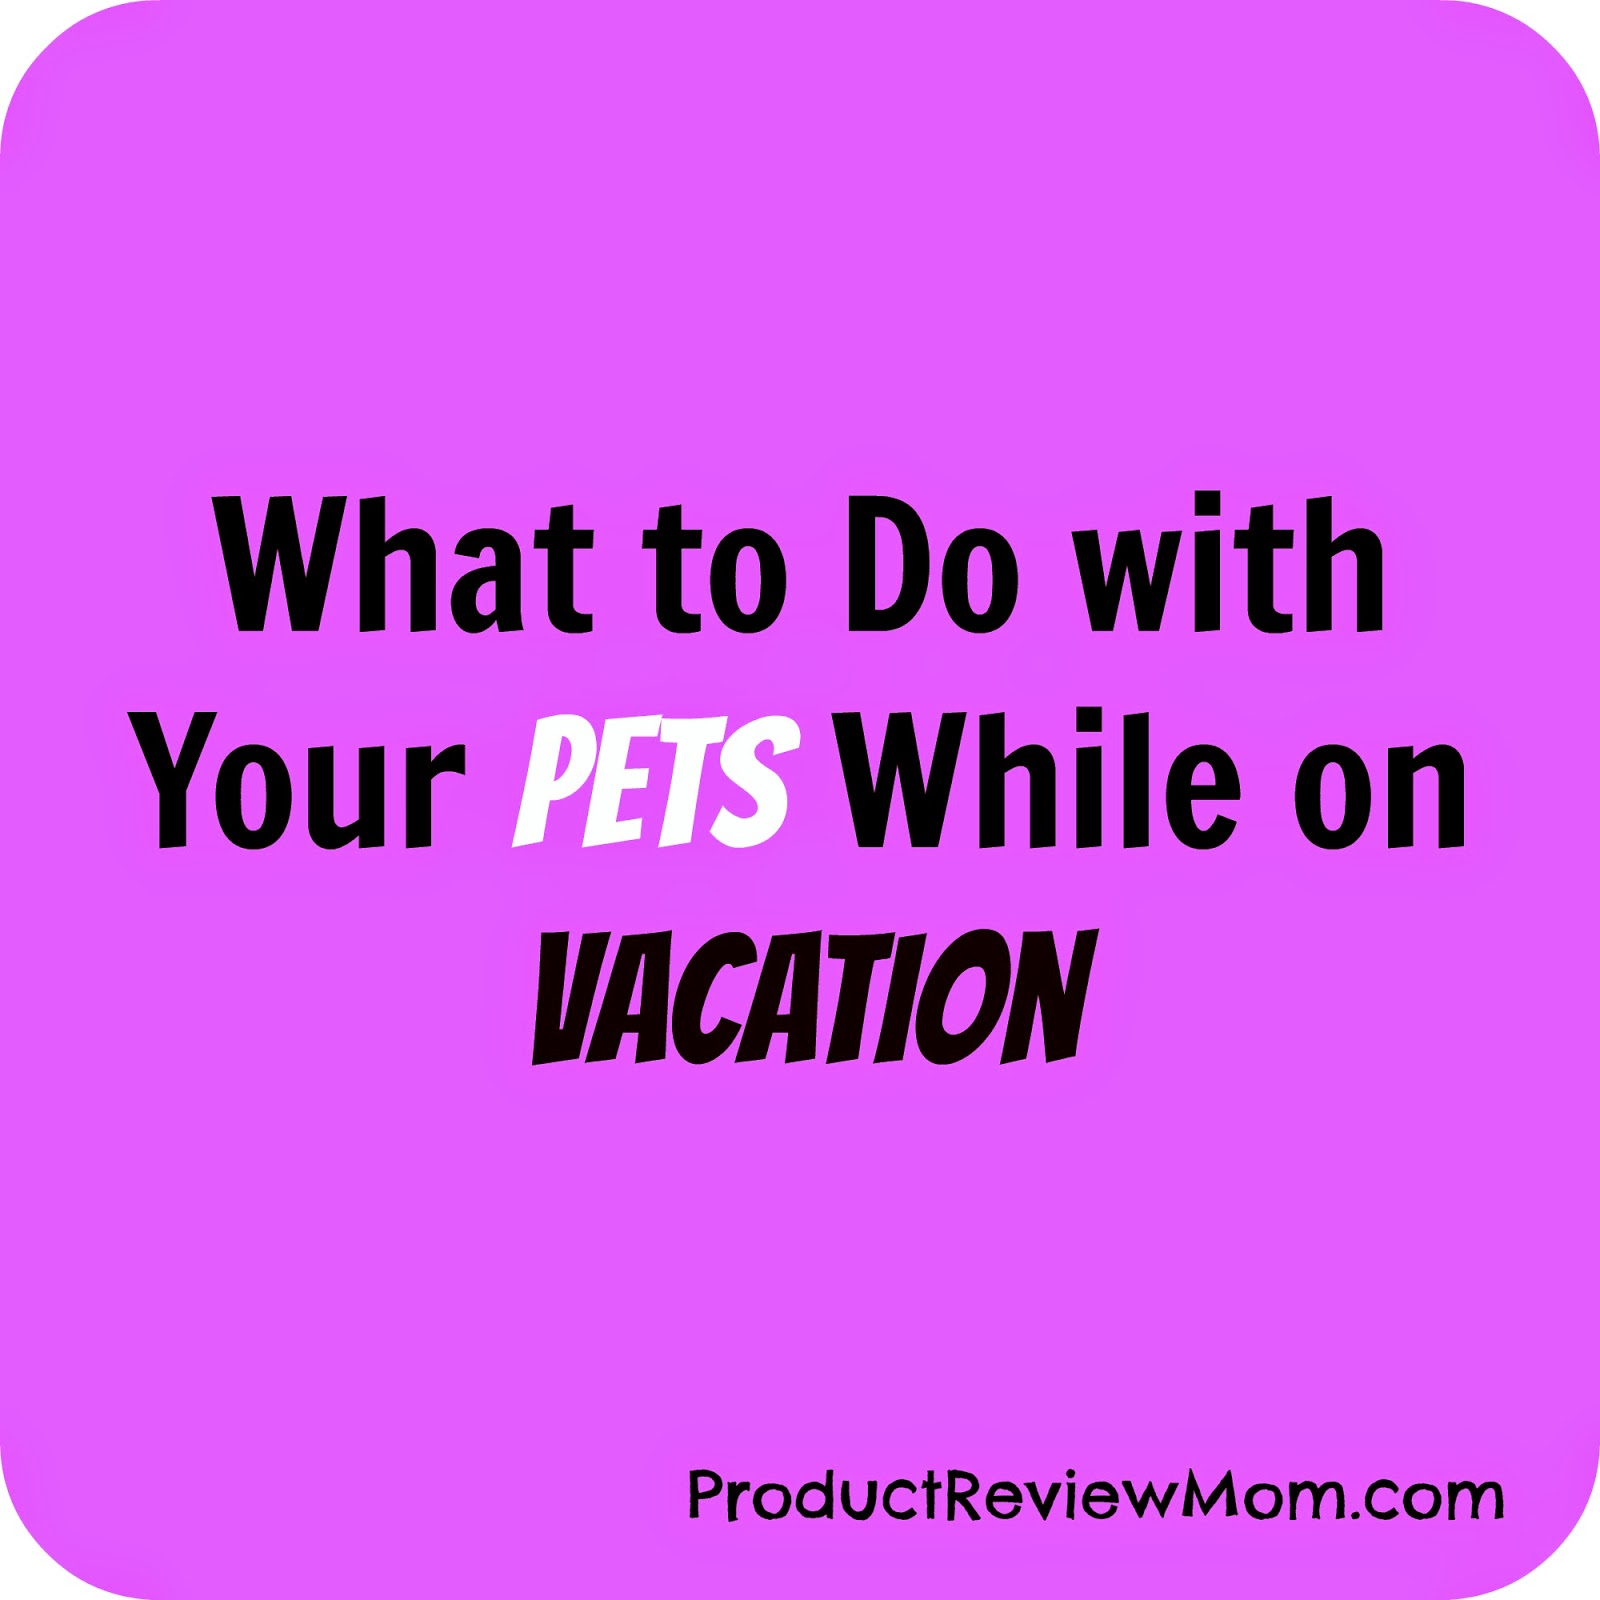 What to Do with Your Pets While on Vacation (Summer Blog Series) via ProductReviewMom.com